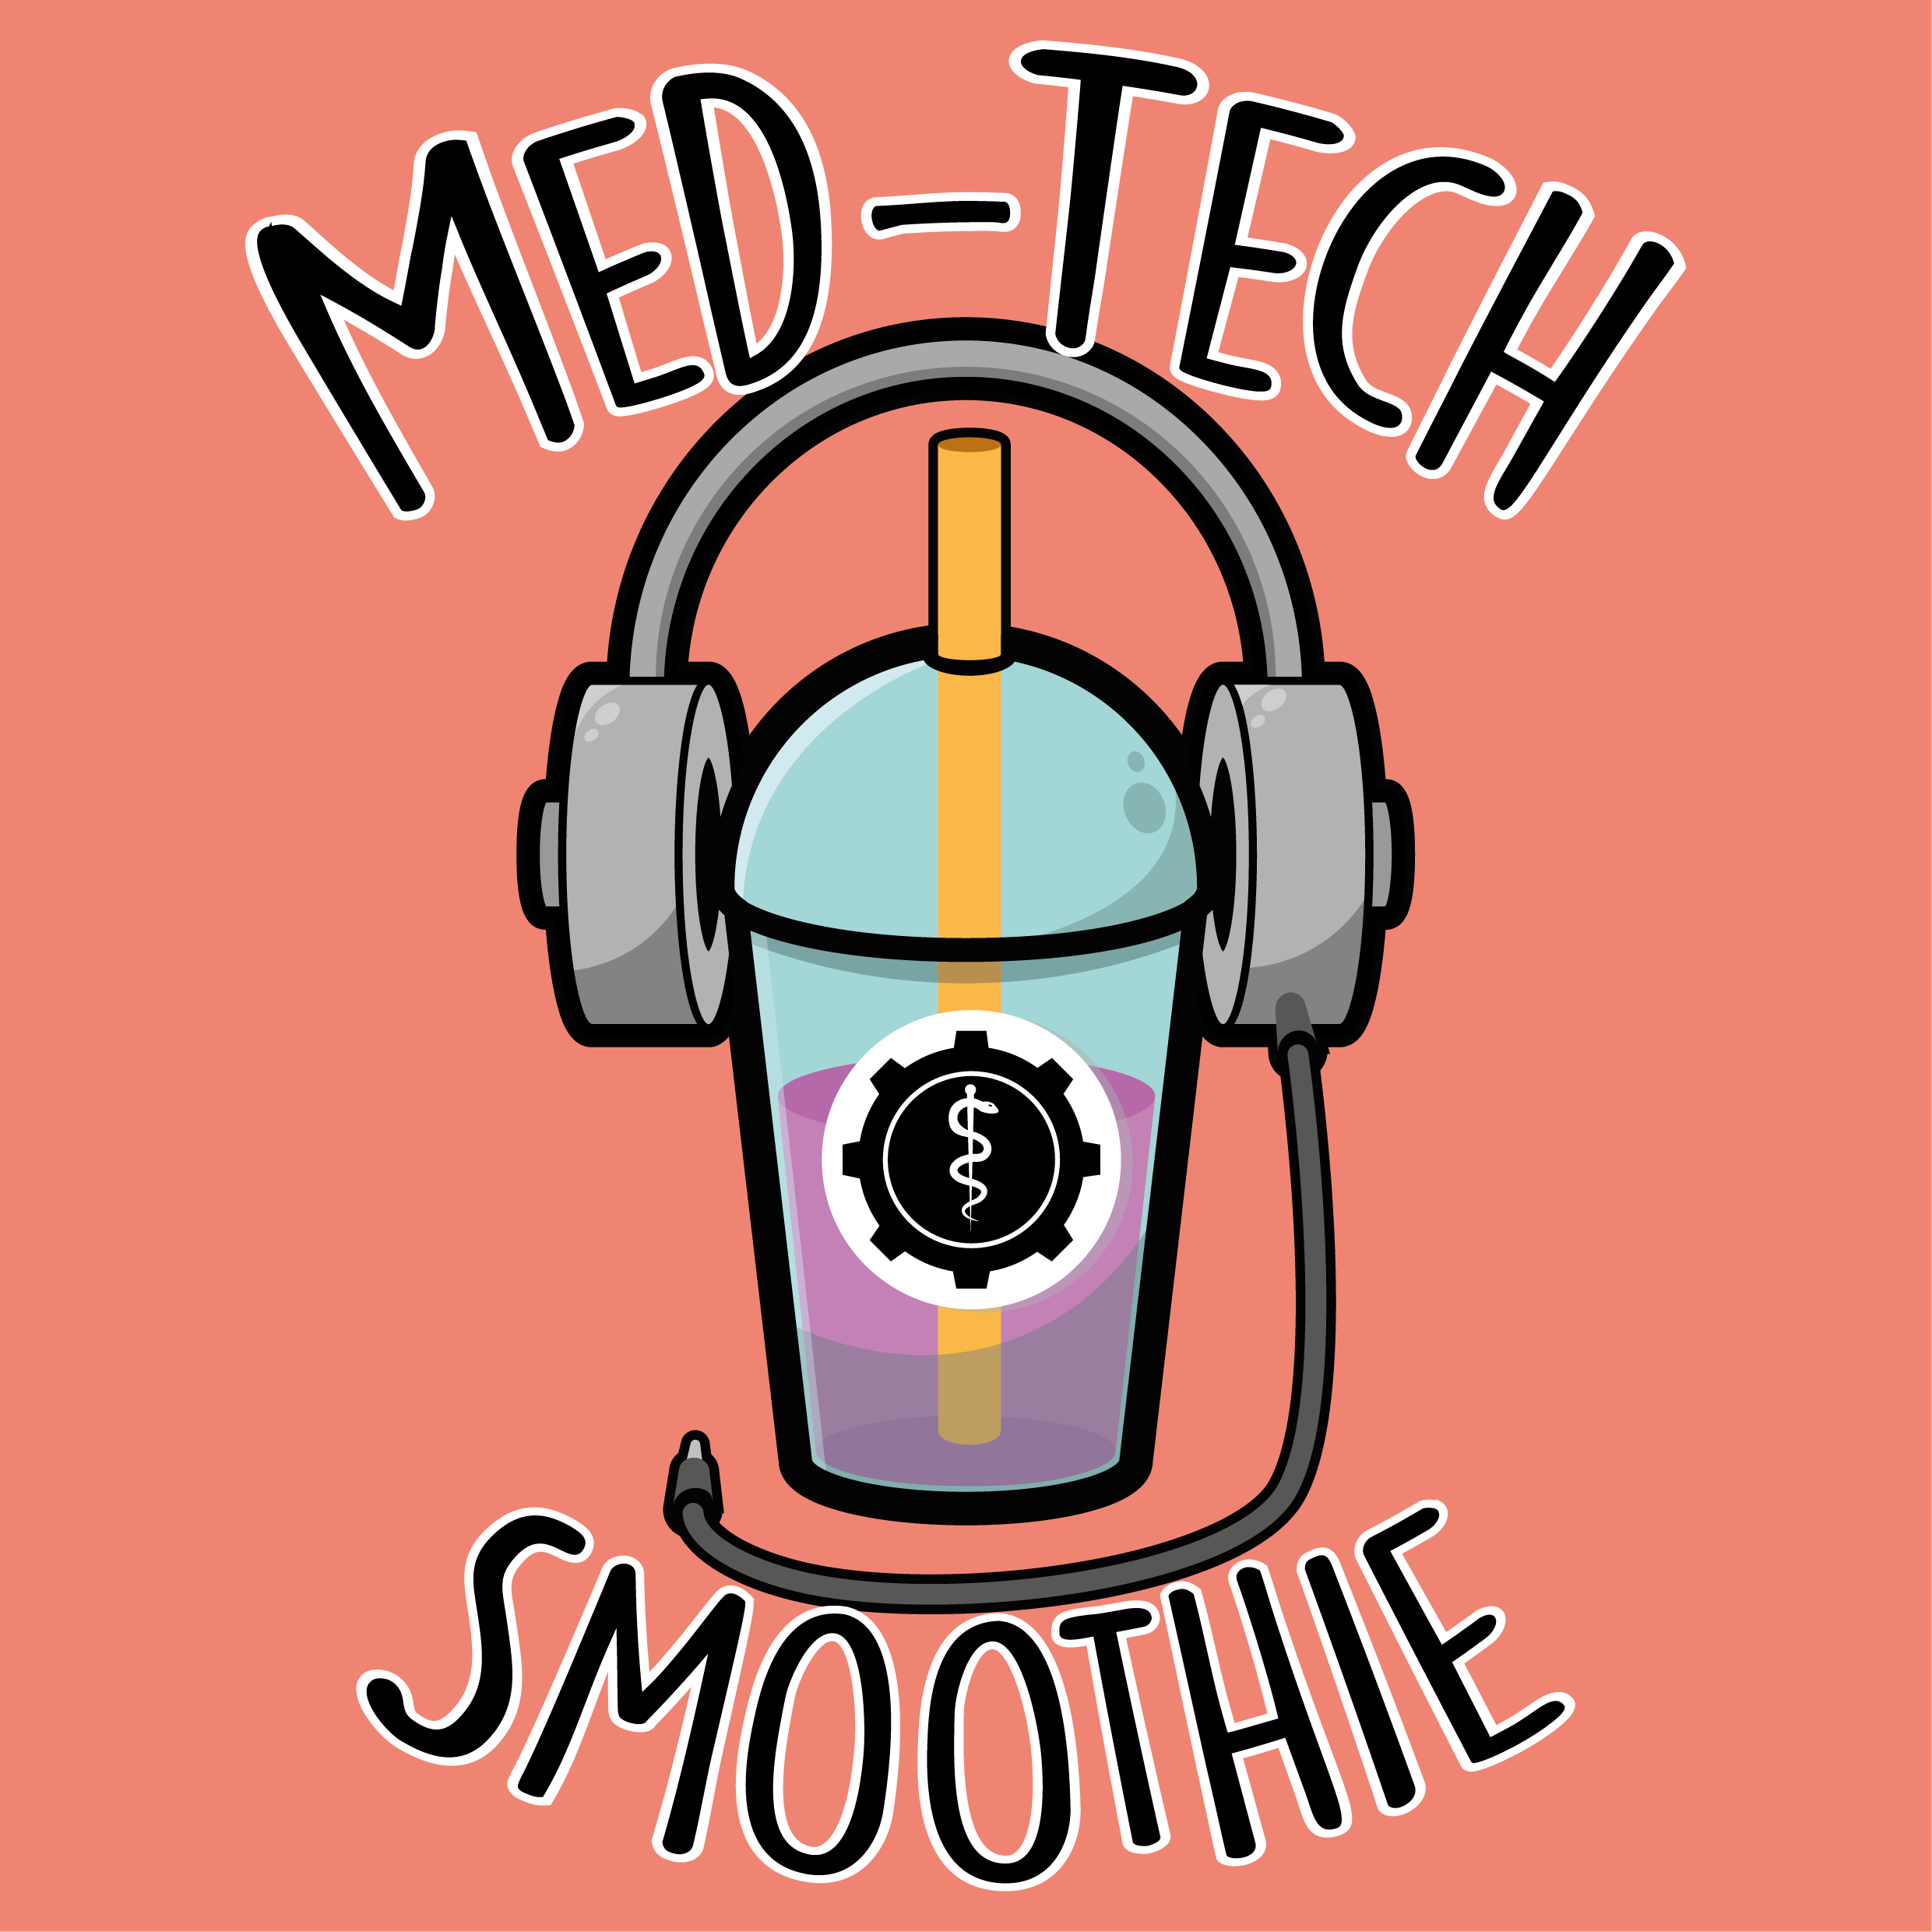 "Podcast ""Med-Tech Smoothie"""